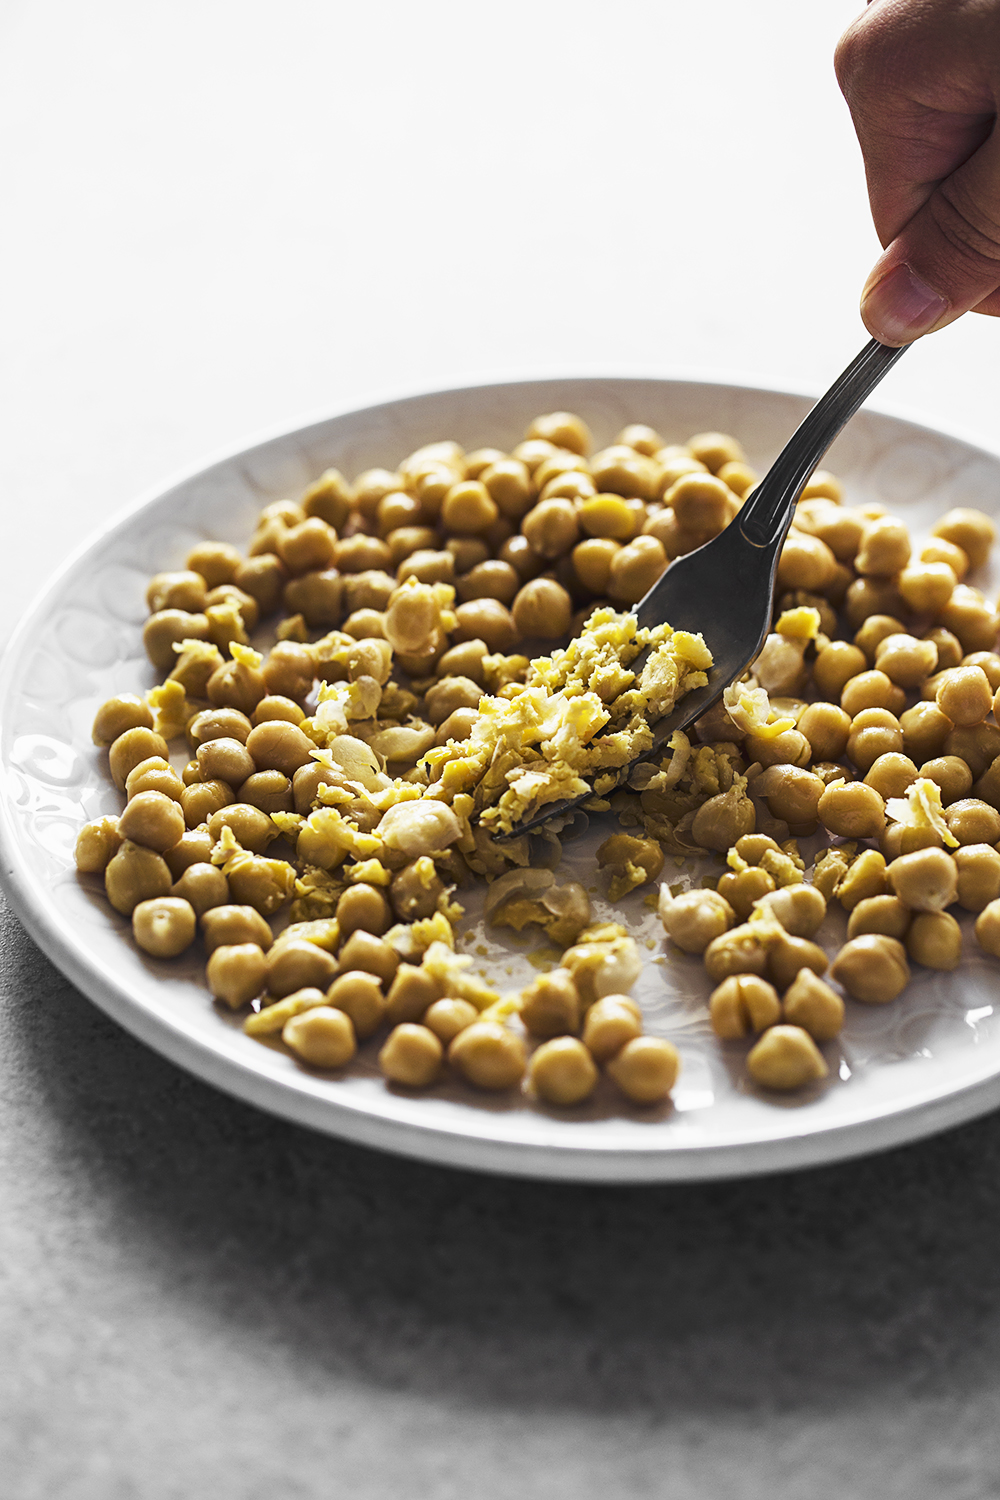 Quick and easy recipe for a Chickpea & Sunflower Spread that resembles tuna paste. 100% plant-based and delicious!